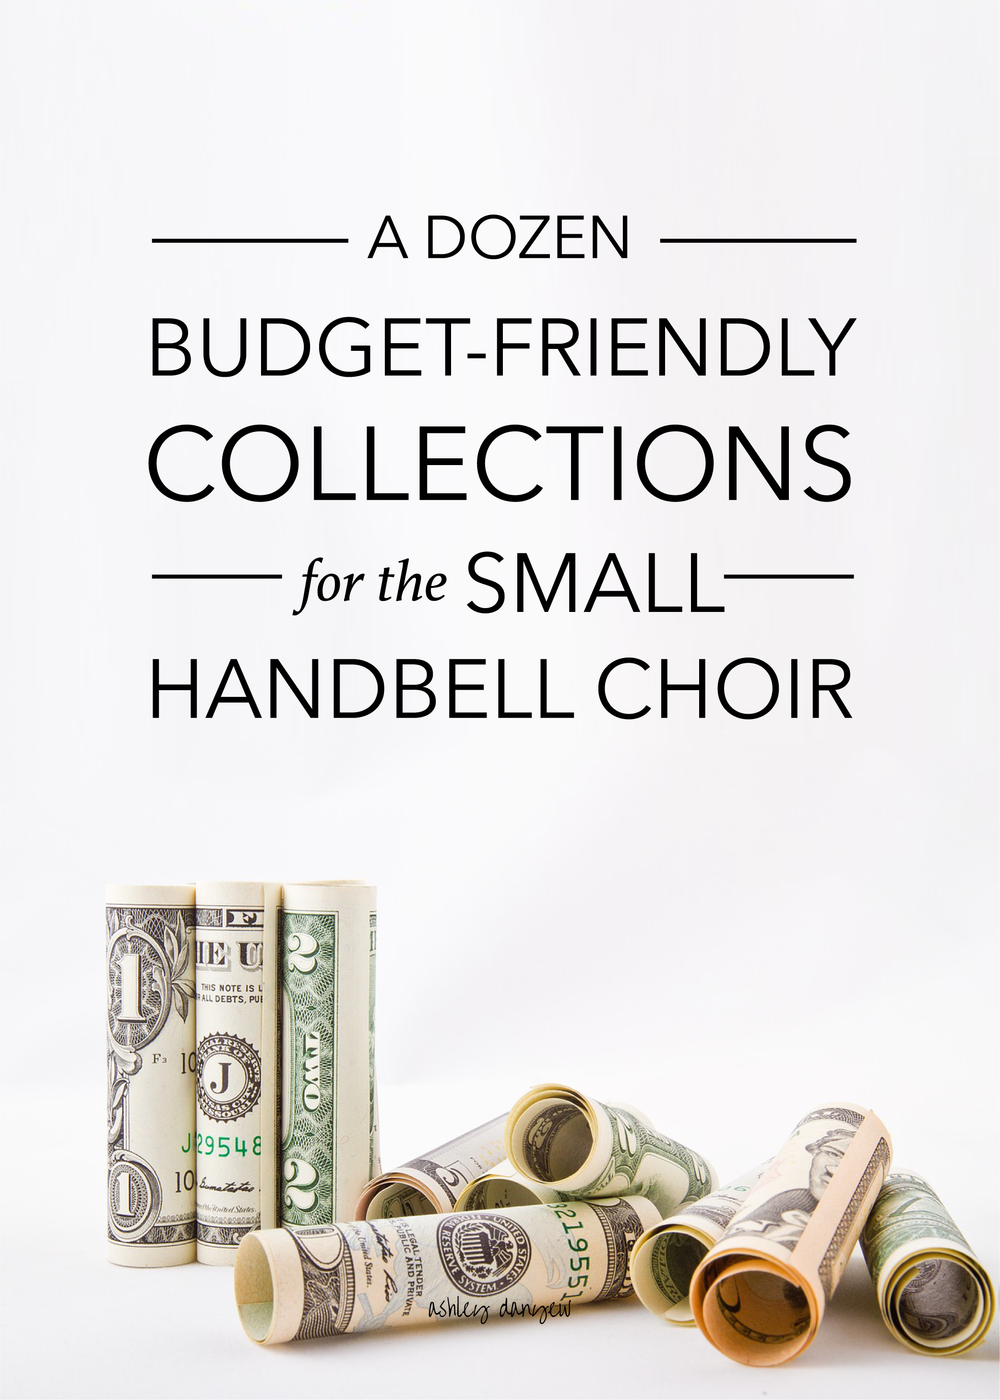 Copy of A Dozen Budget-Friendly Collections for the Small Handbell Choir